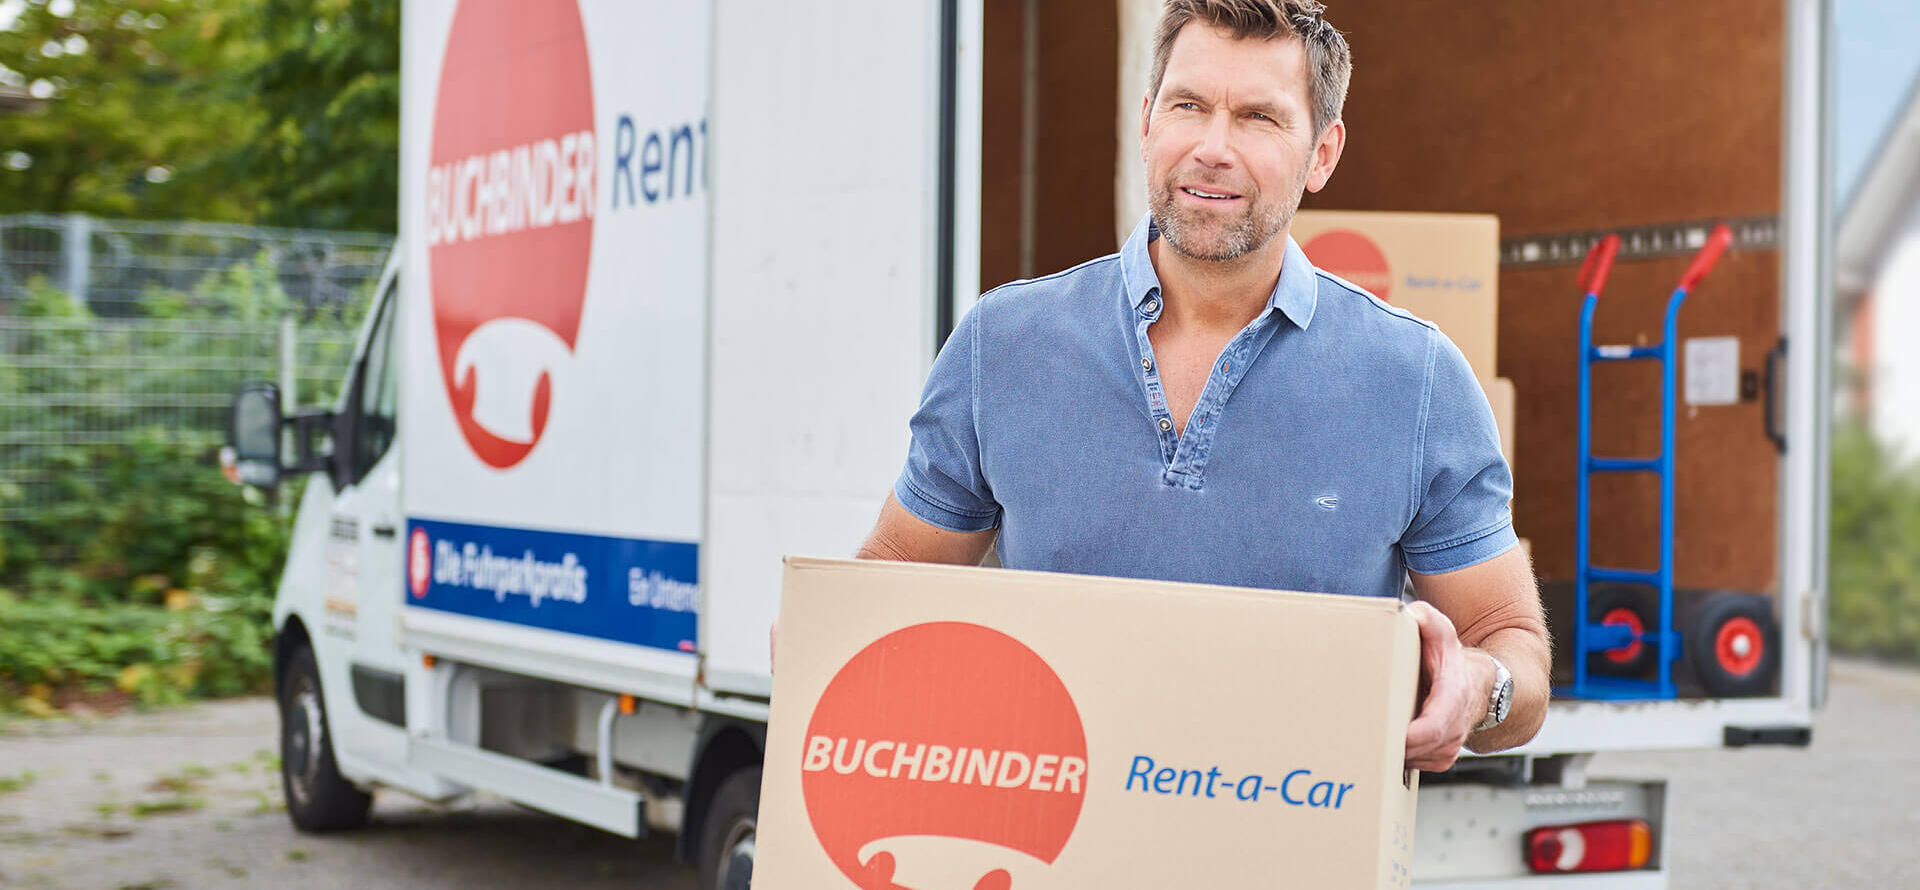 Buchbinder move-offer